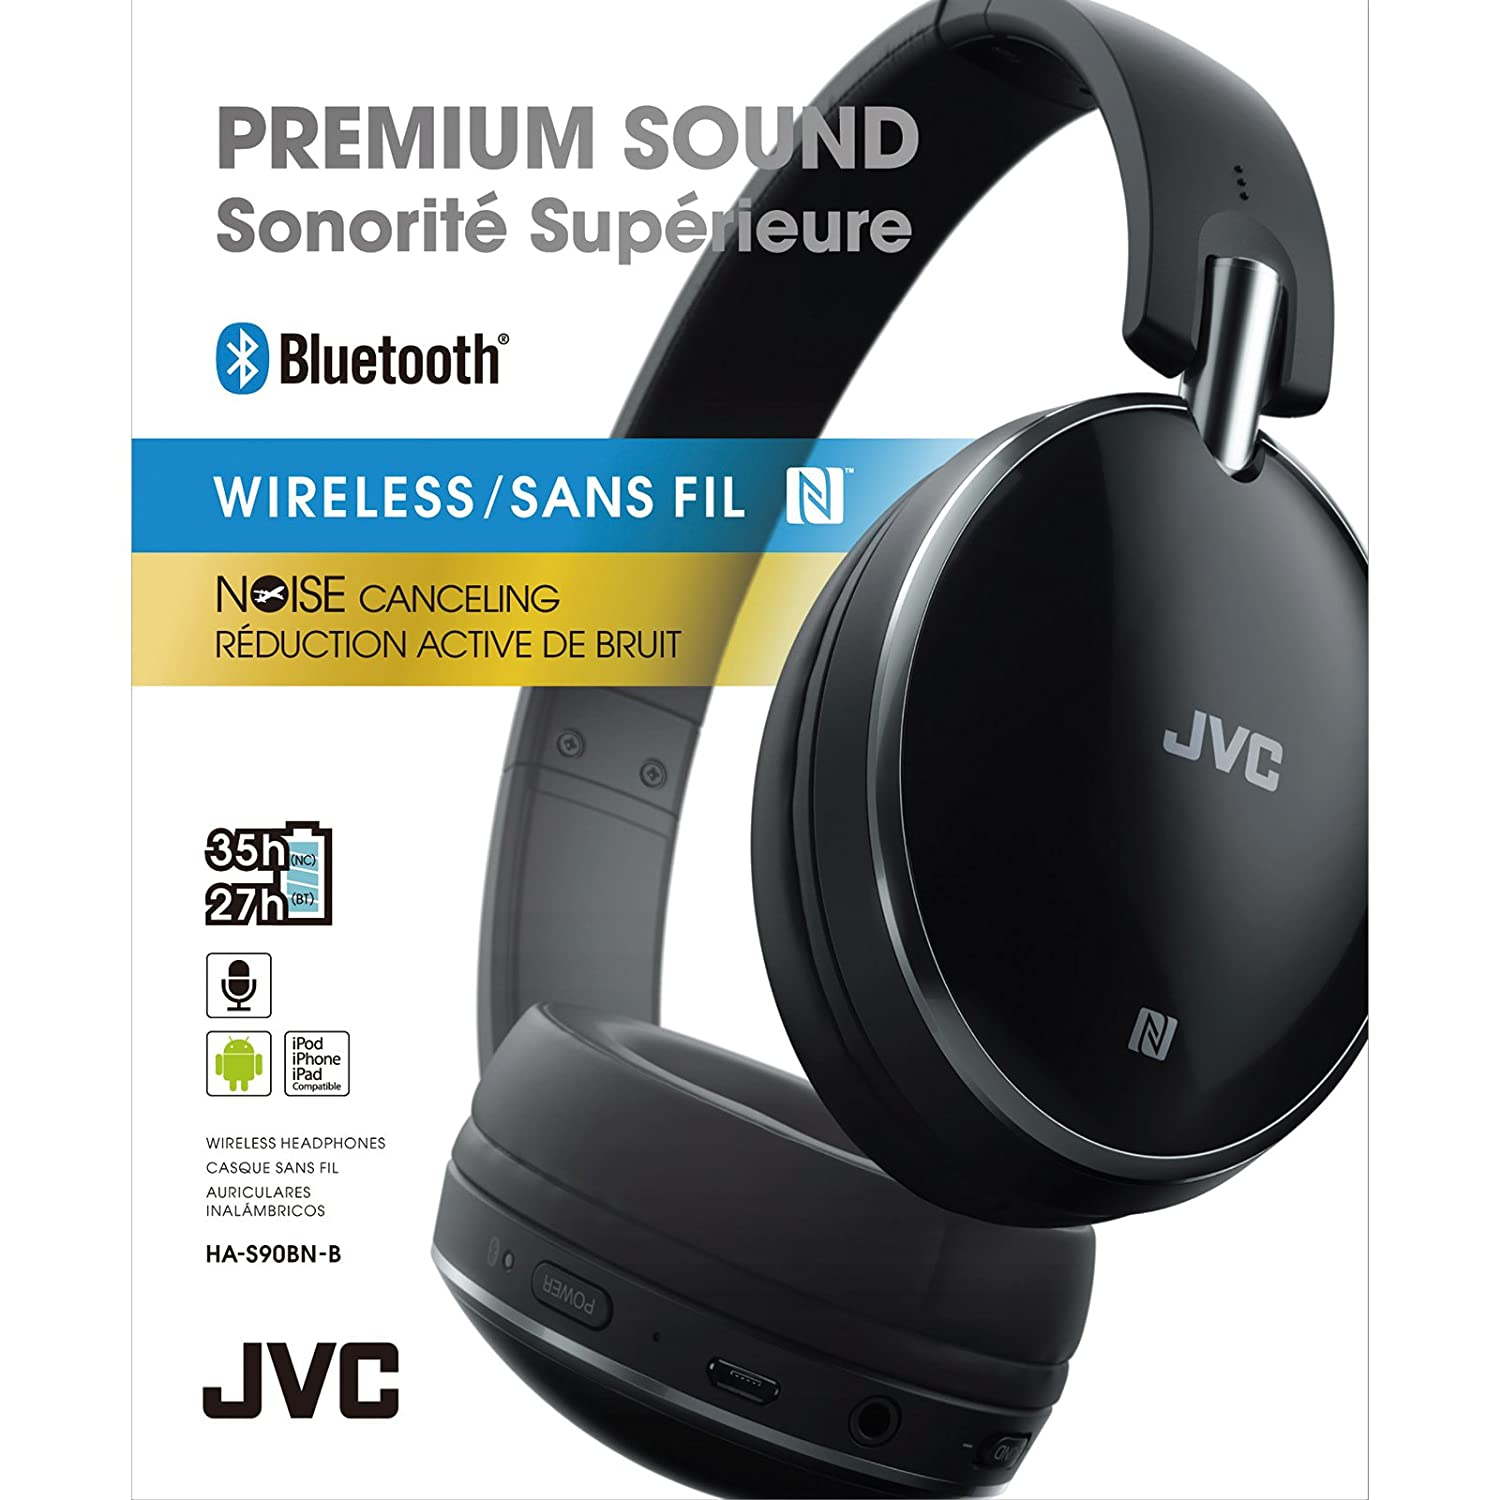 Amazon.com: JVC HA-S90BN Noise Cancelling On-Ear Bluetooth Headphones (Black) + Power Bank + Smartphone Sport Armband + Kit: JVC: Home Audio & Theater